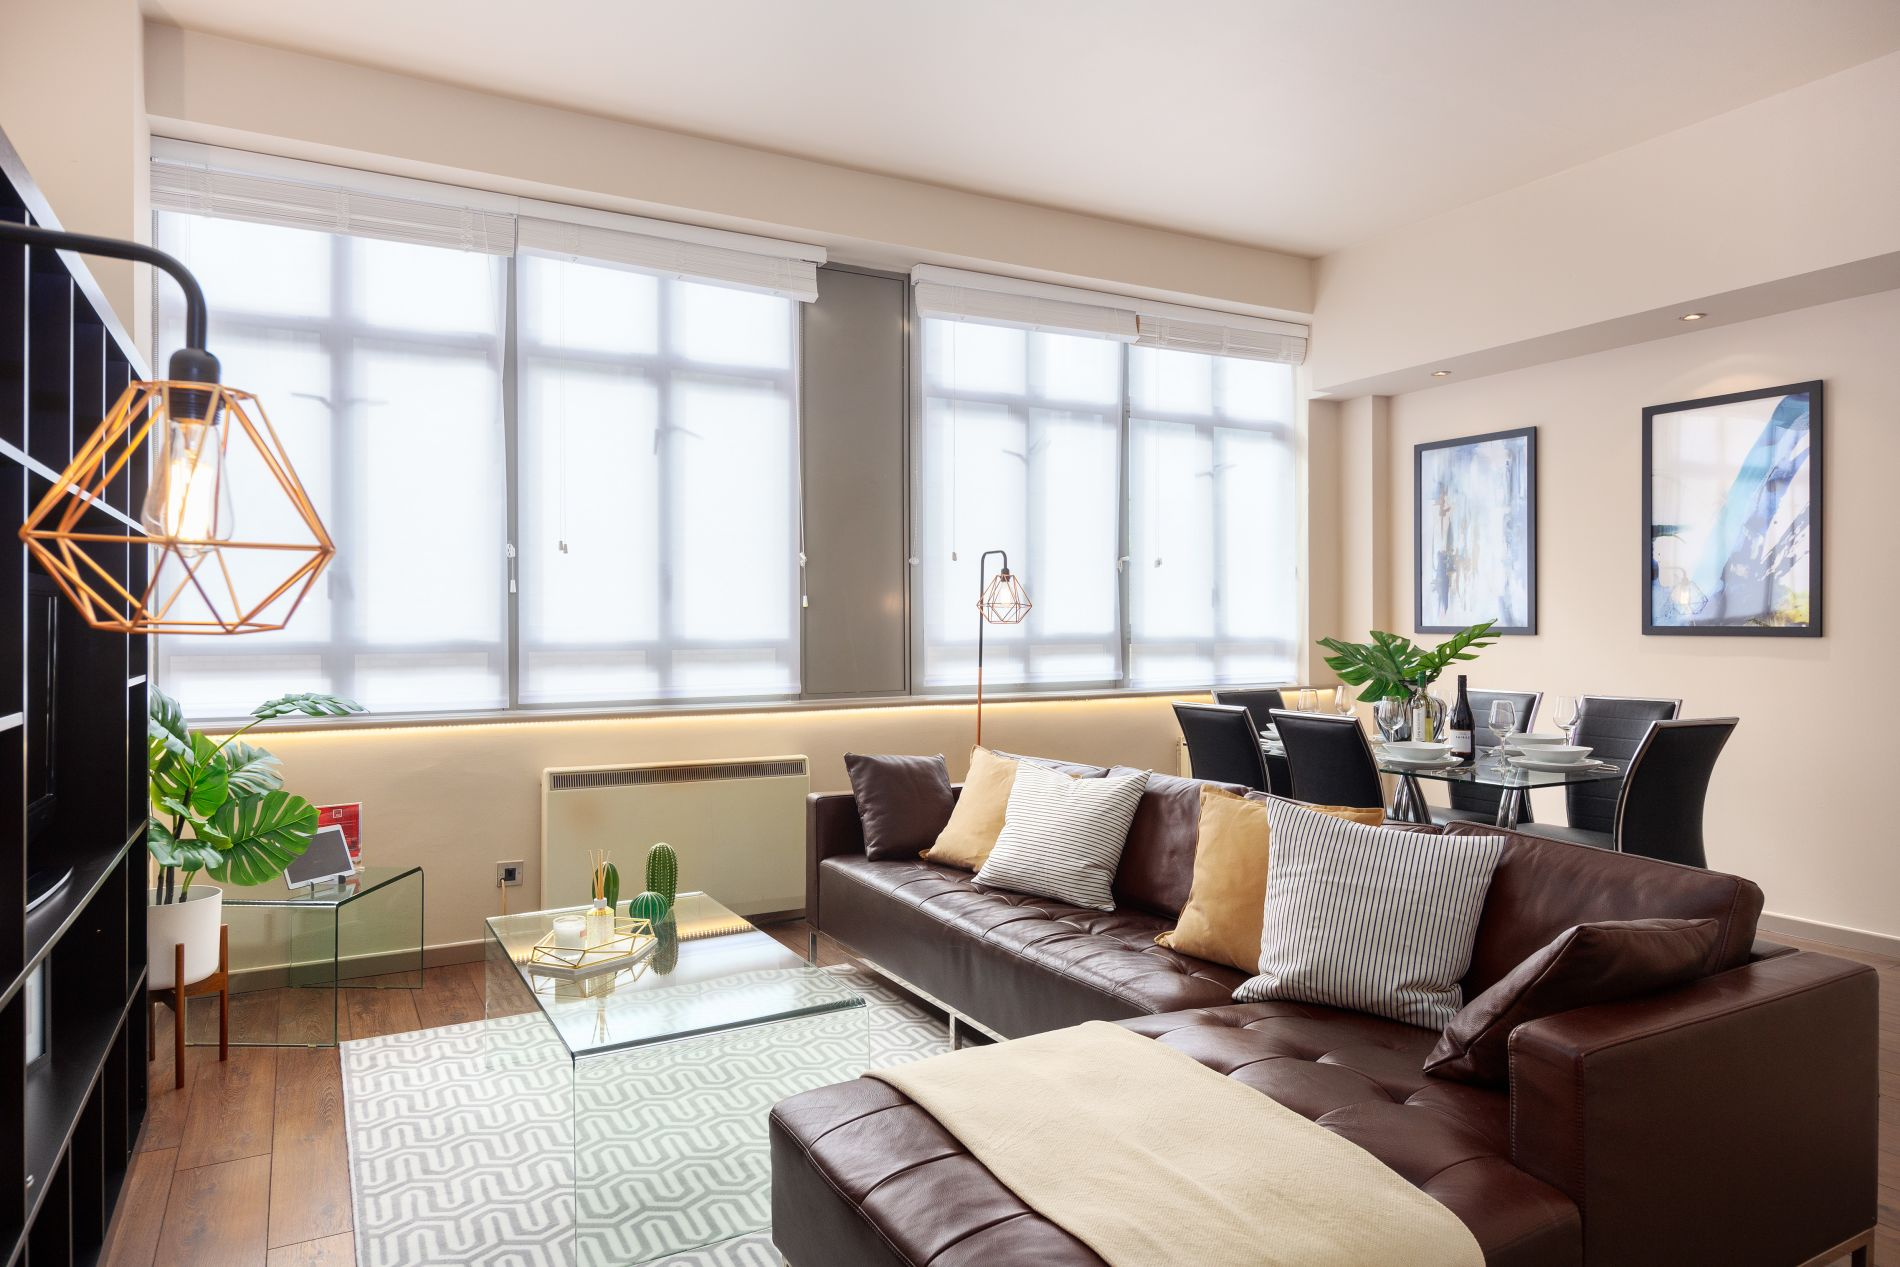 Serviced accommodation in Clerkenwell, London